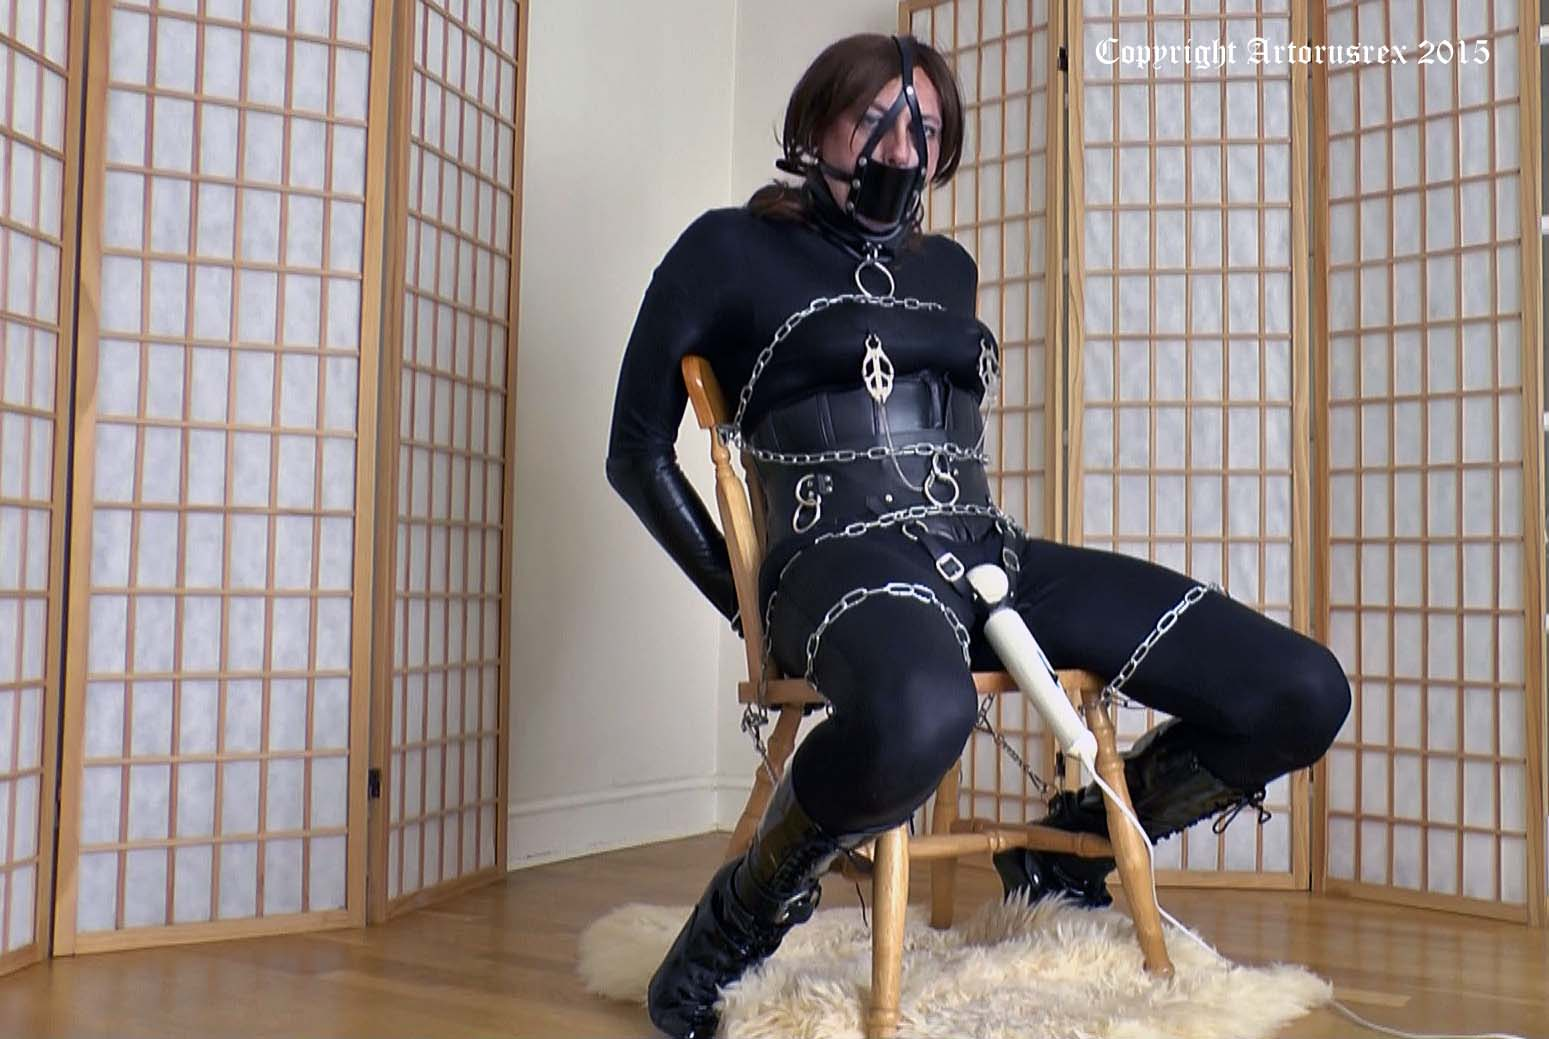 EMMA BOUND: Charlotte Handcuffed And Chained To A Chair